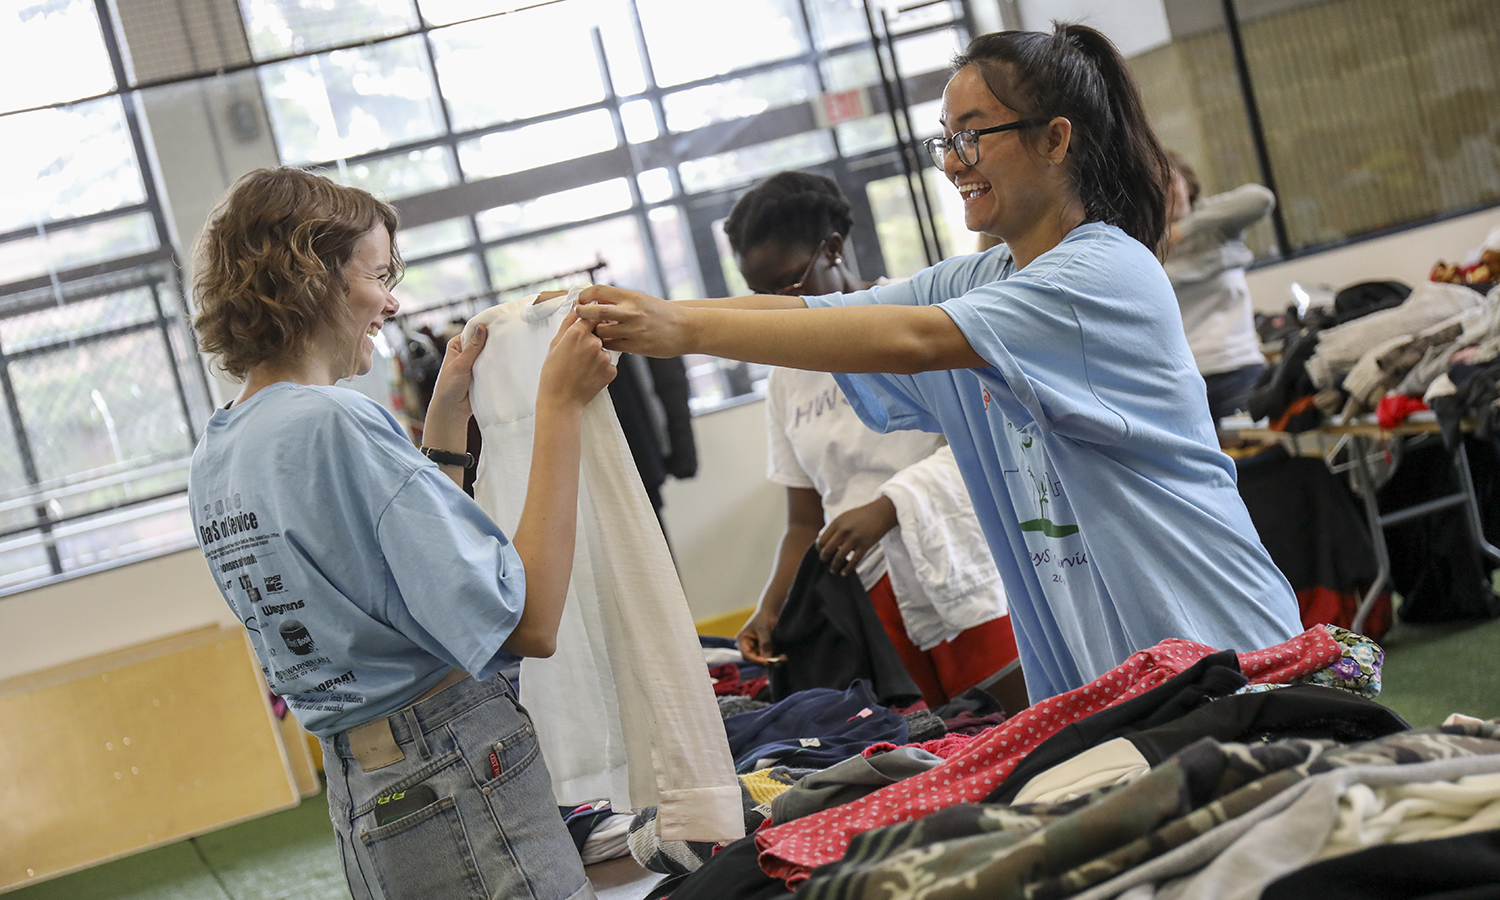 Ren Workman '18 and Swellar Zhou '18 fold shirts at the Community Sale in the Geneva Recreation Center.